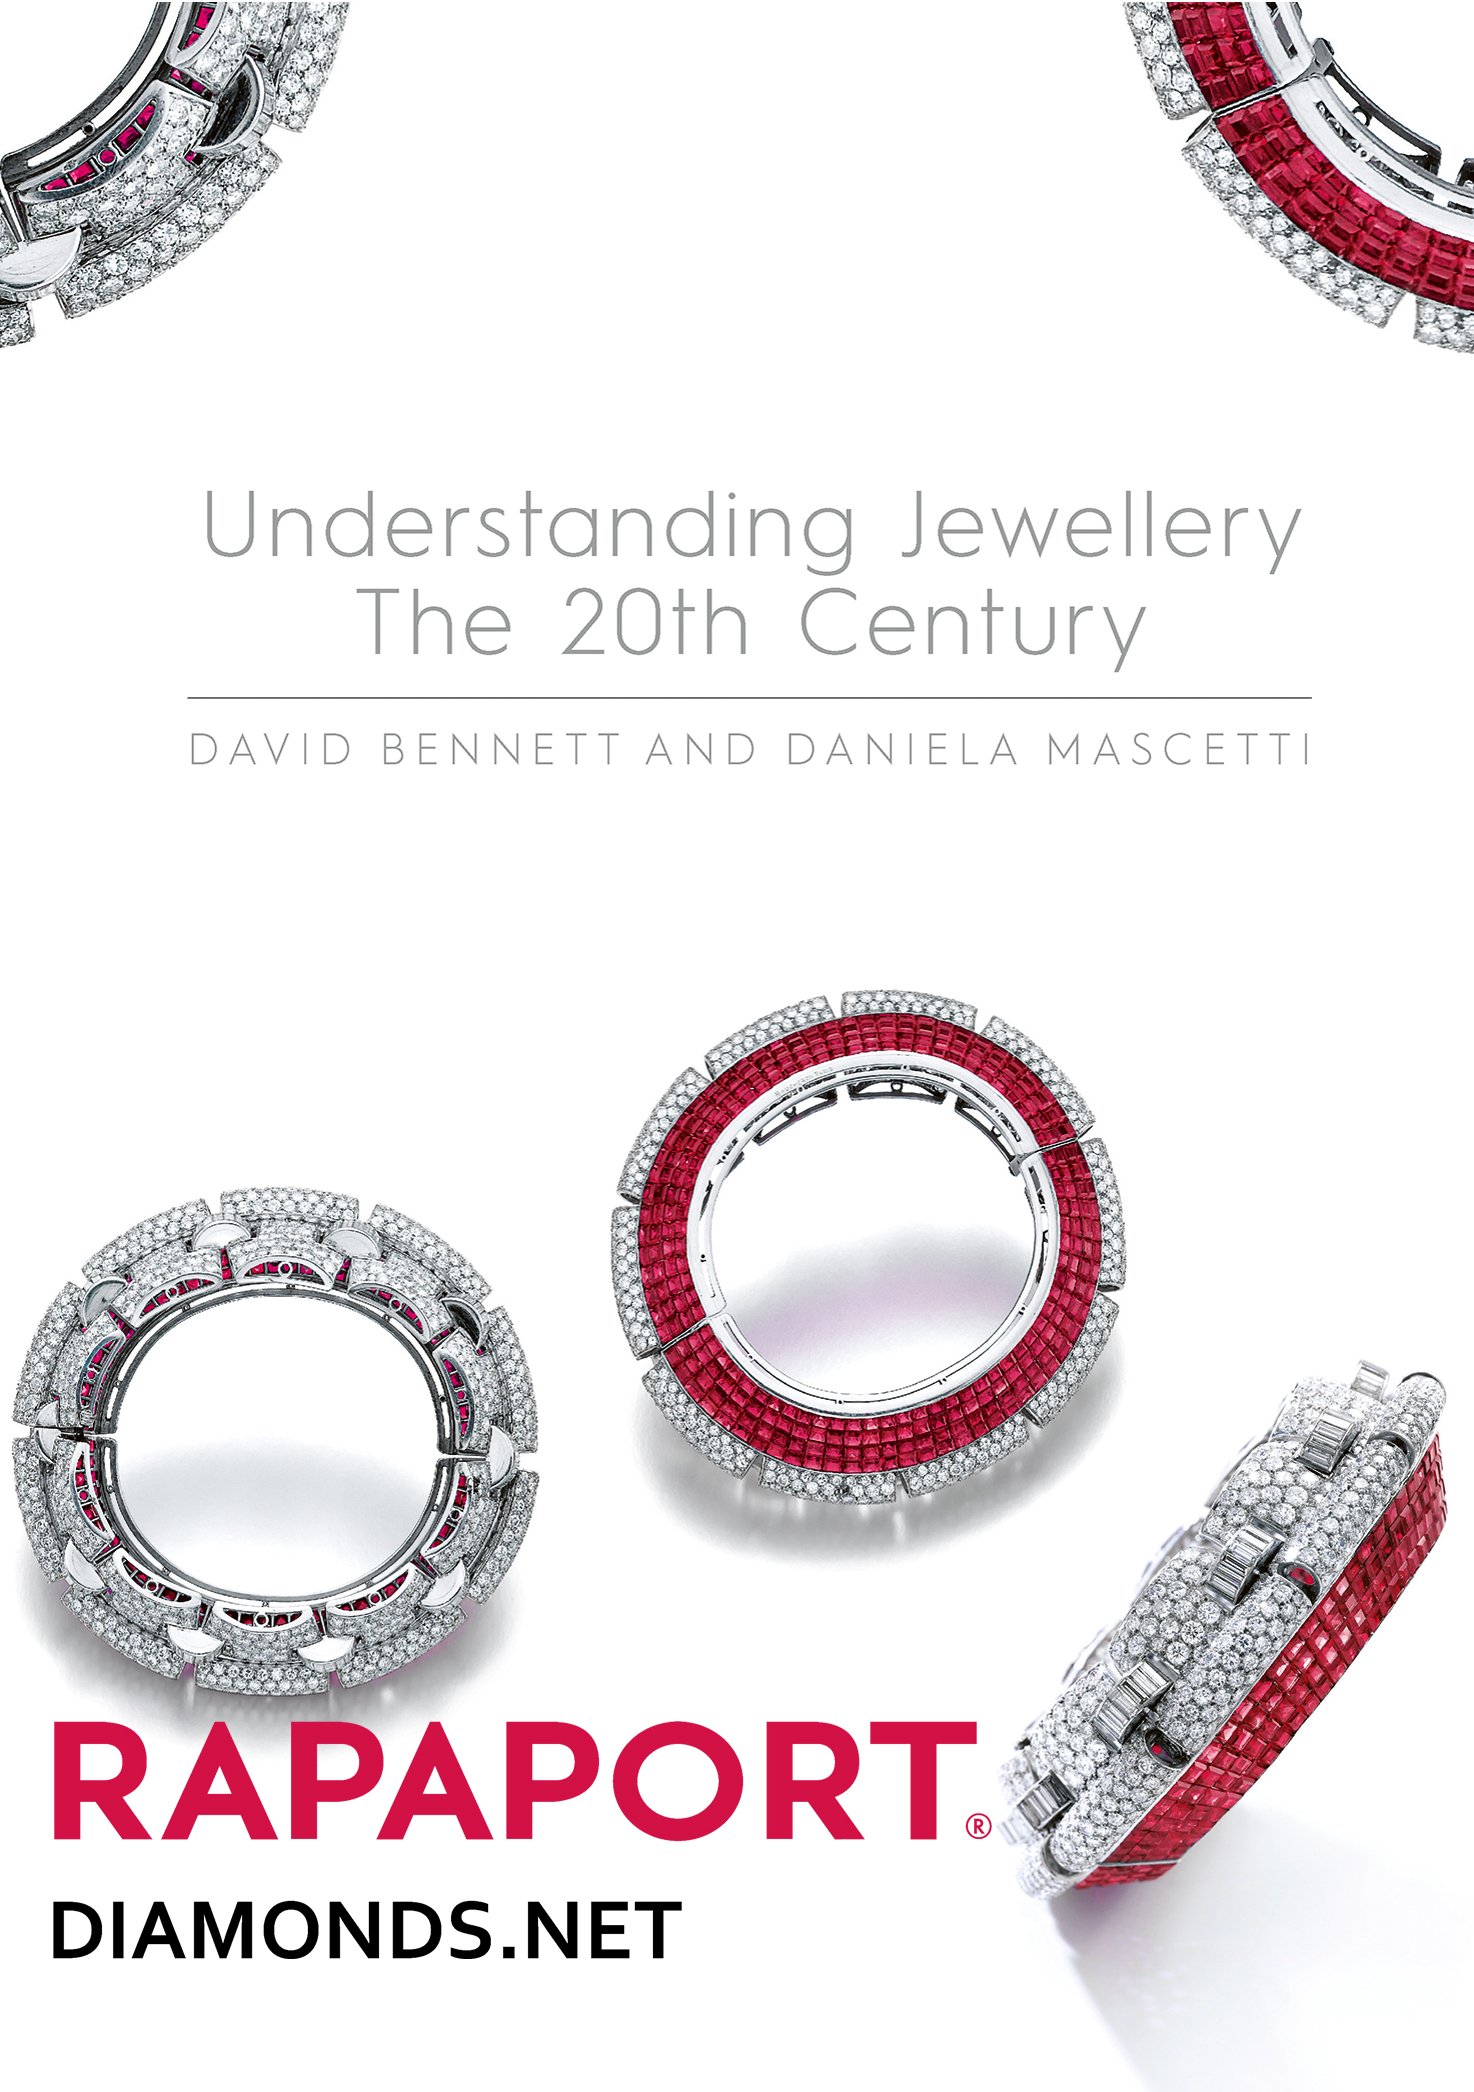 Understanding Jewellery is a new reference work on 20th century jewellery, providing a detailed history of jewellery design and development from 1900 to 2000